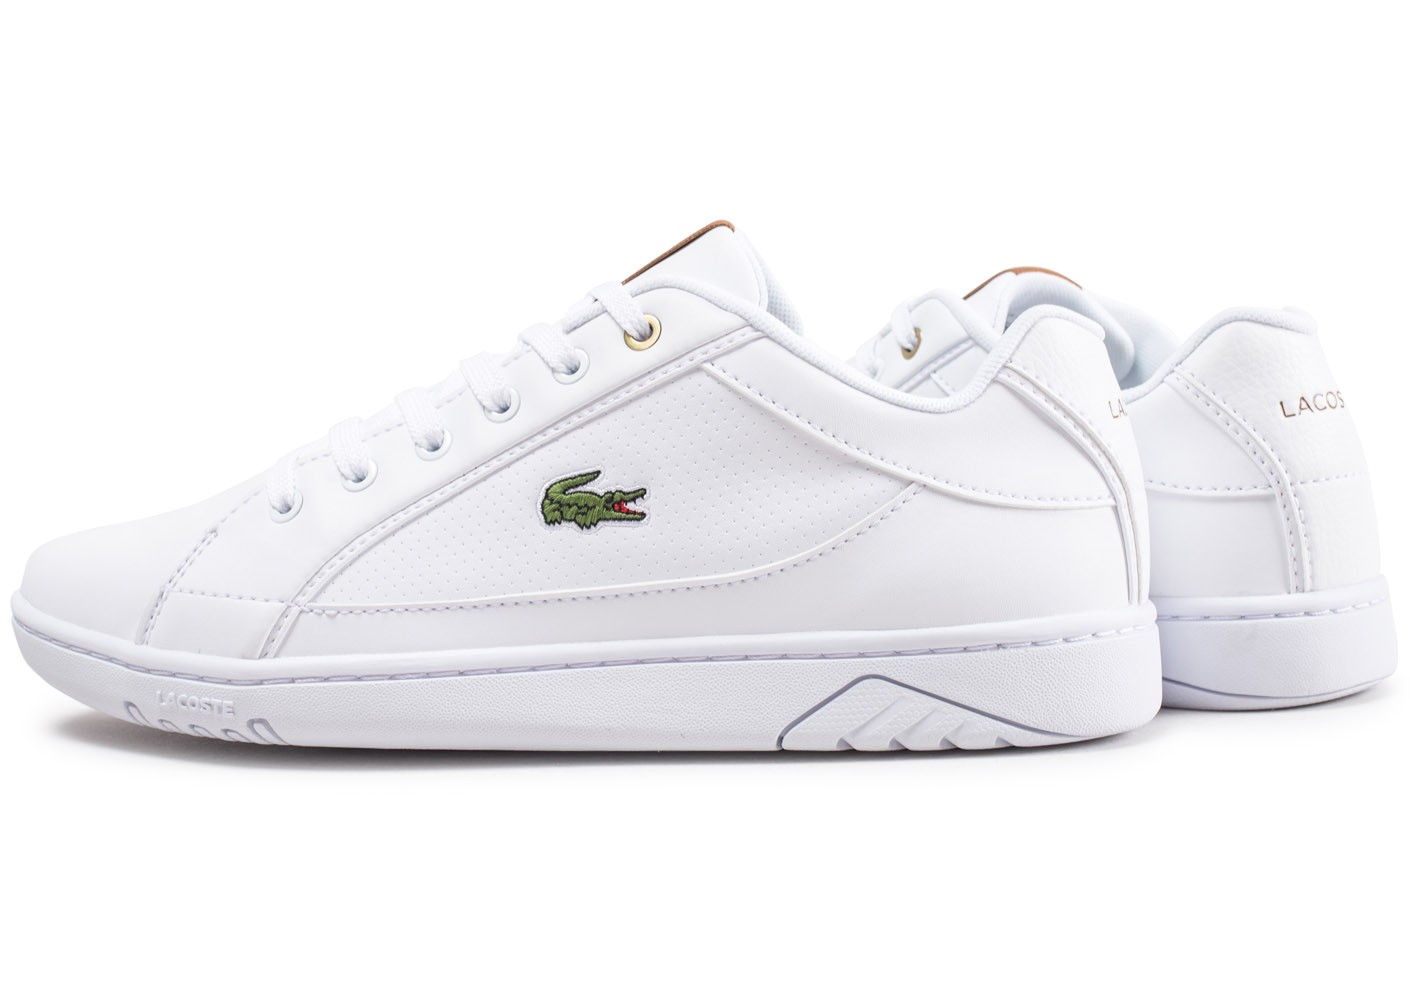 chaussures lacoste taille grand ou petit,chaussure lacoste c